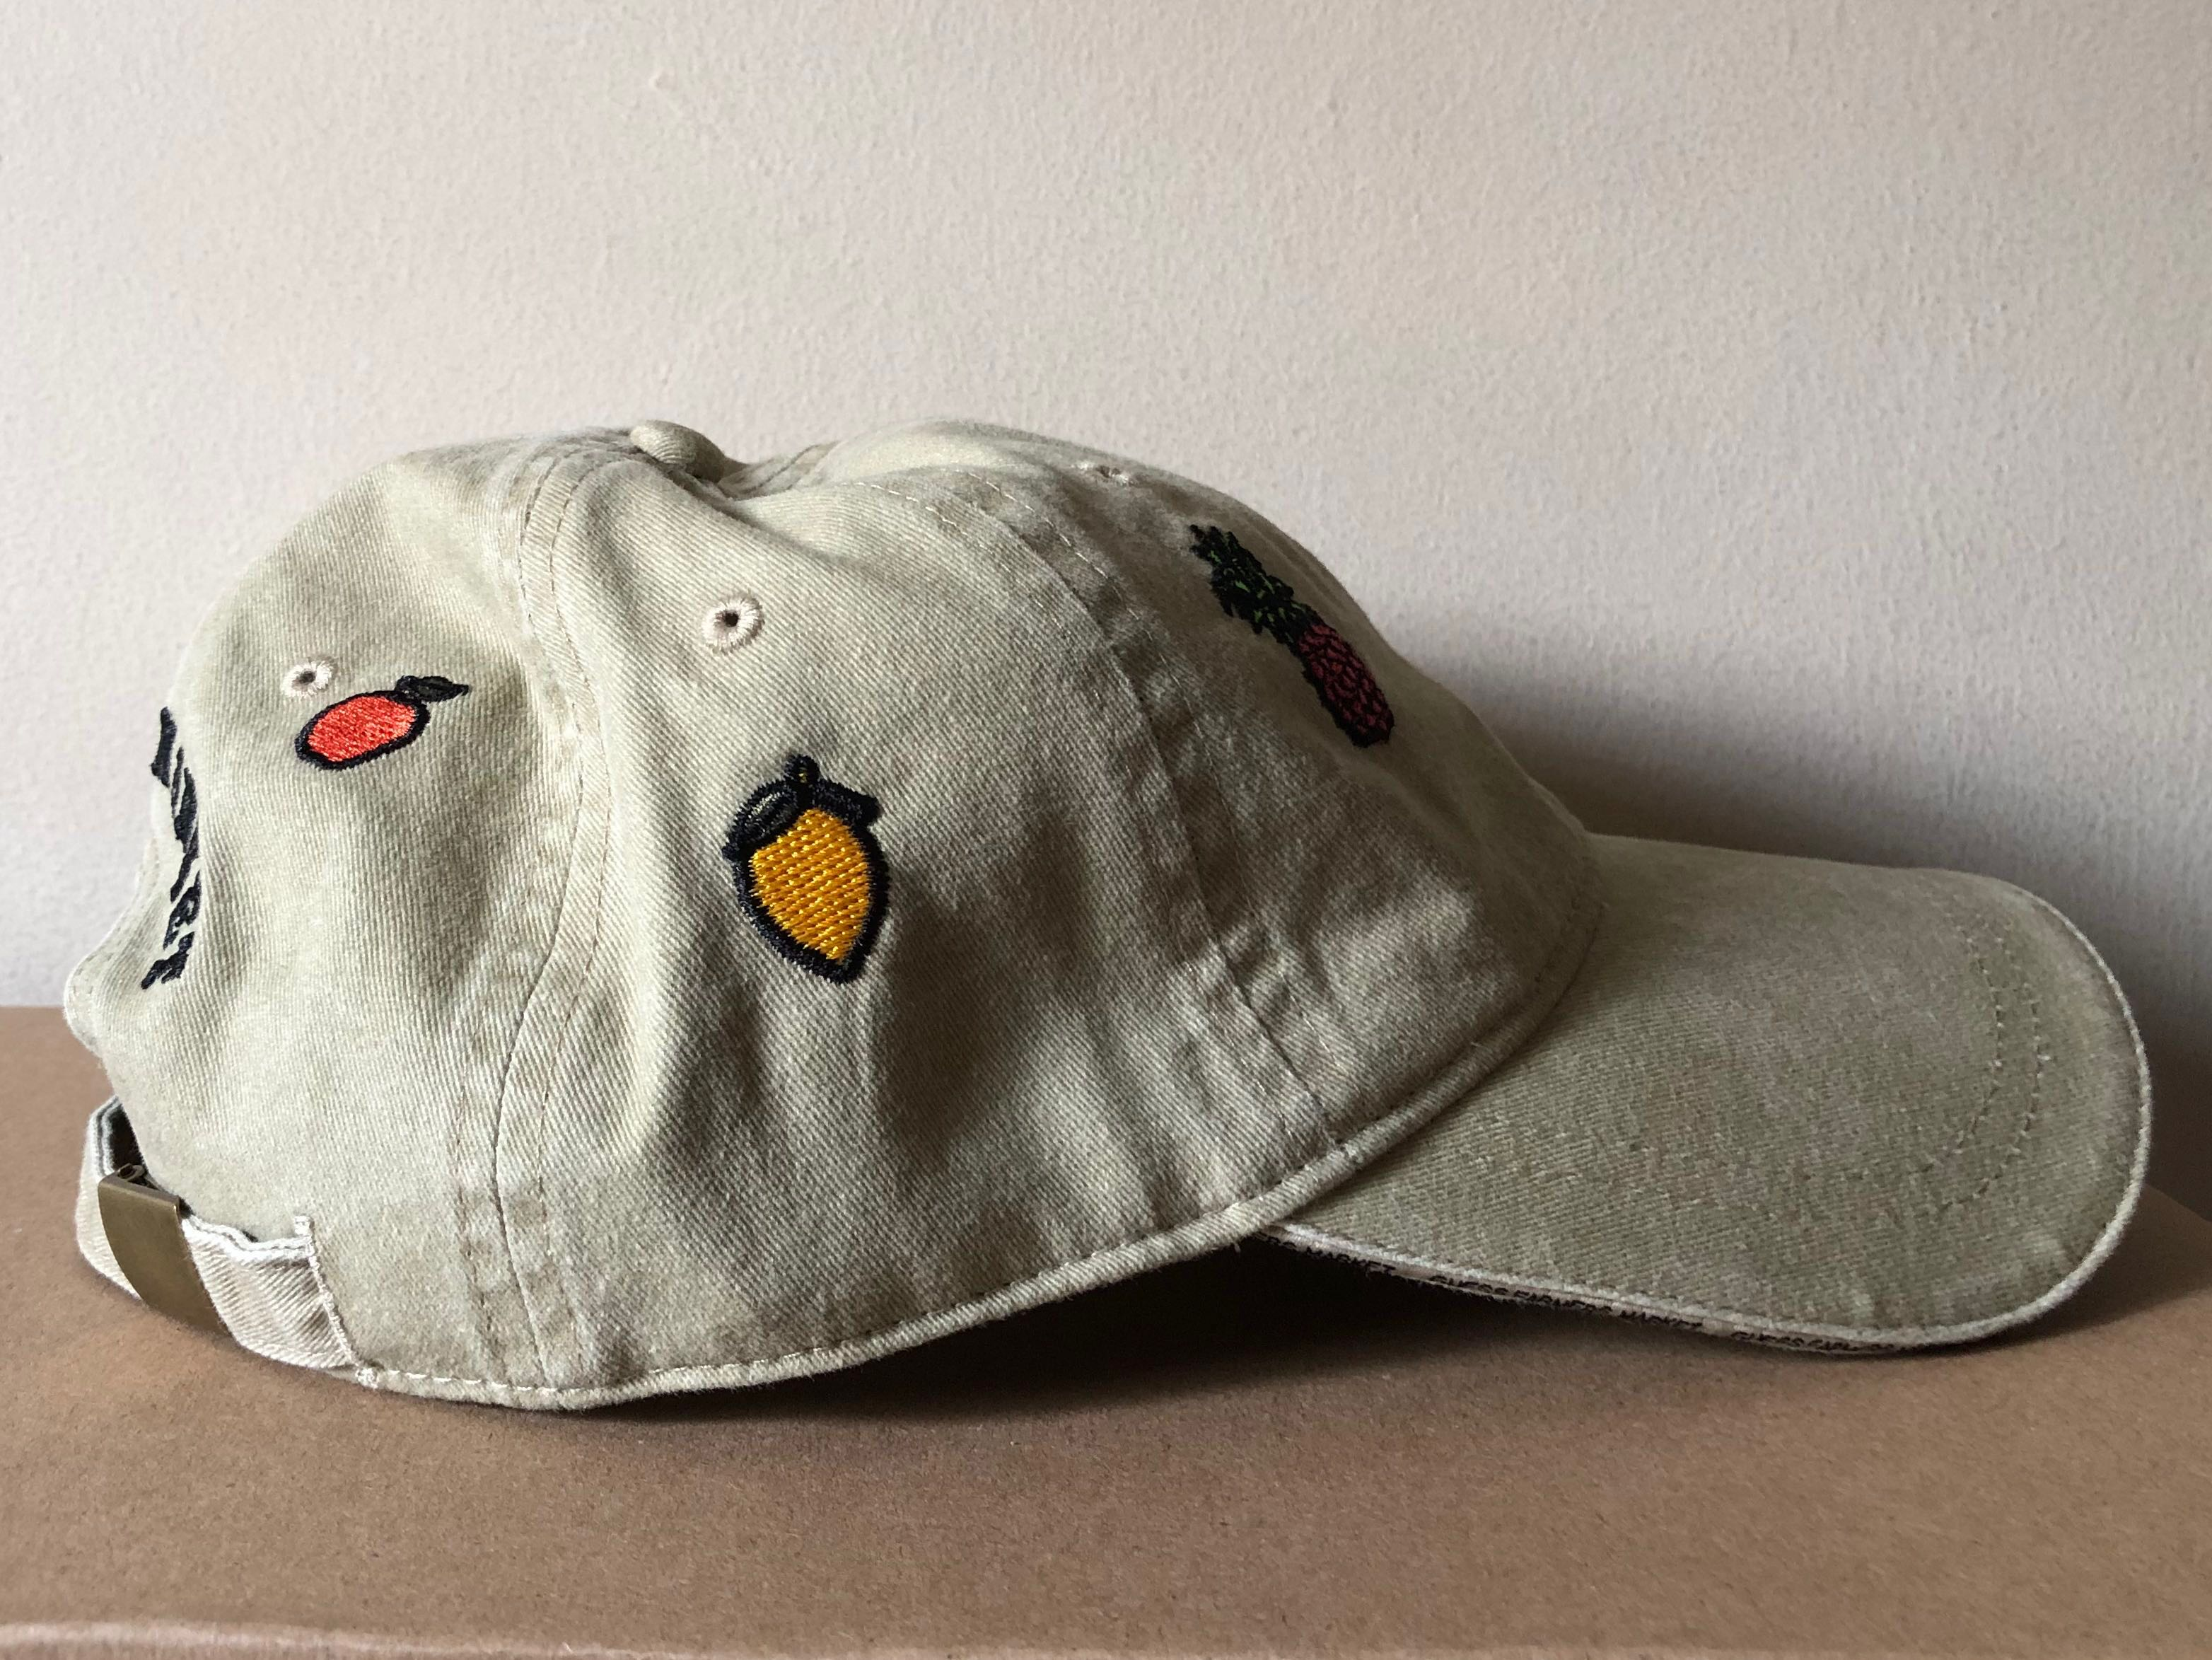 16749b08 GUESS x Sean Wotherspoon Farmers Market Collection Beige Baseball Cap,  Men's Fashion, Accessories, Caps & Hats on Carousell